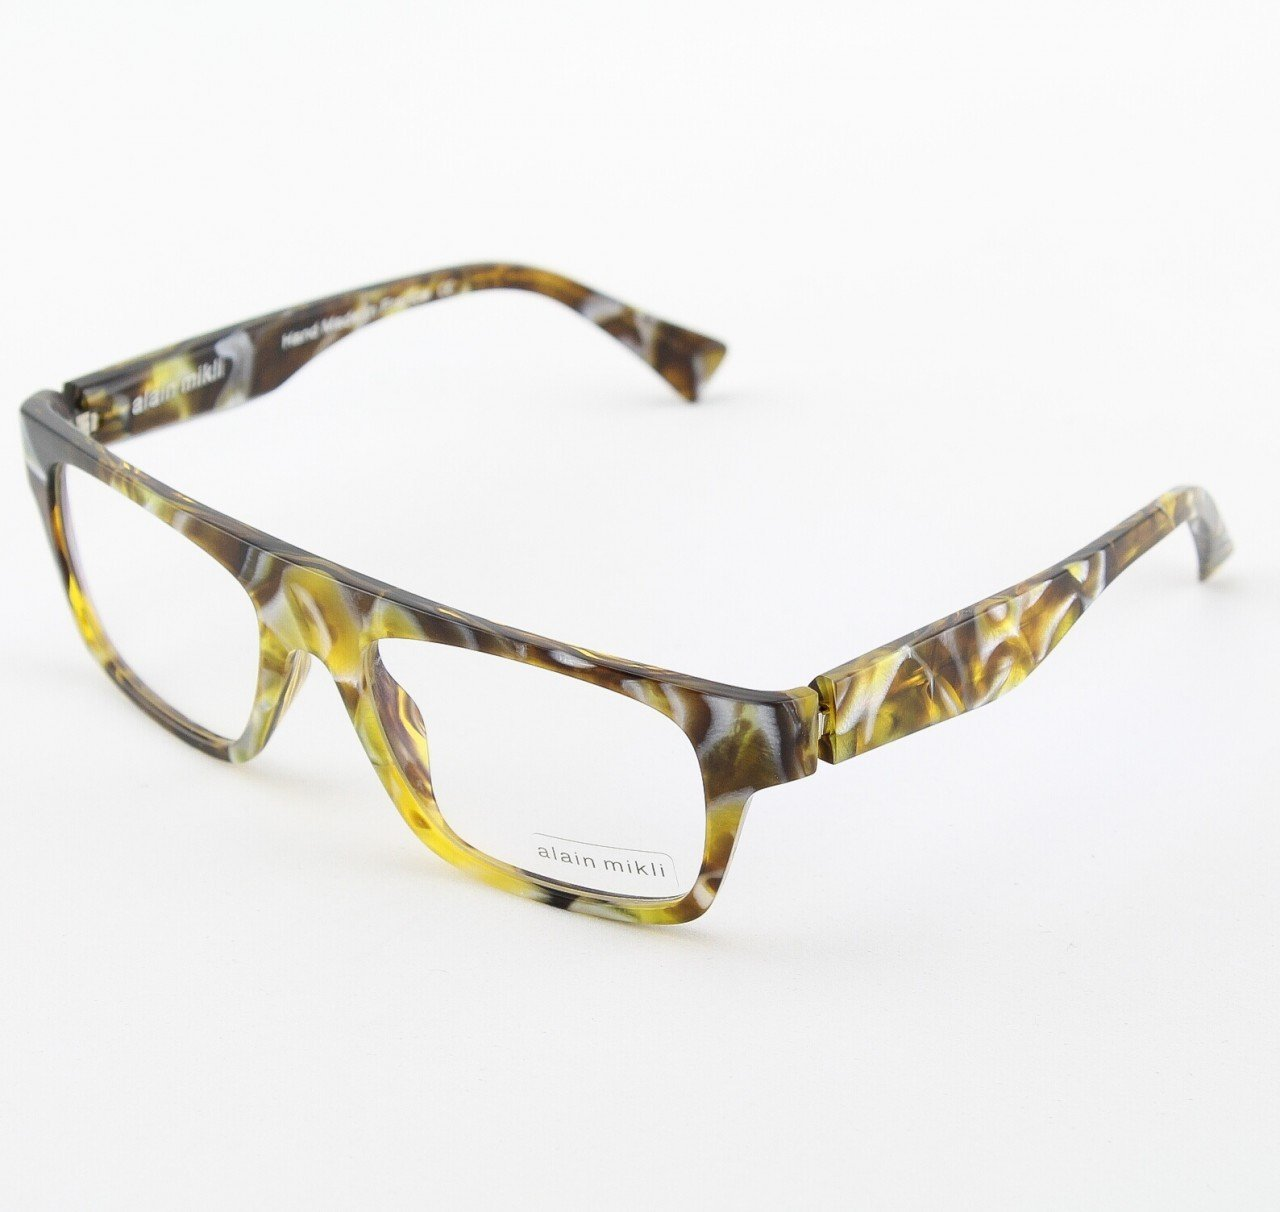 Alain Mikli Eyeglasses AL1047 Col. 201 Pearlized Gold and Brown